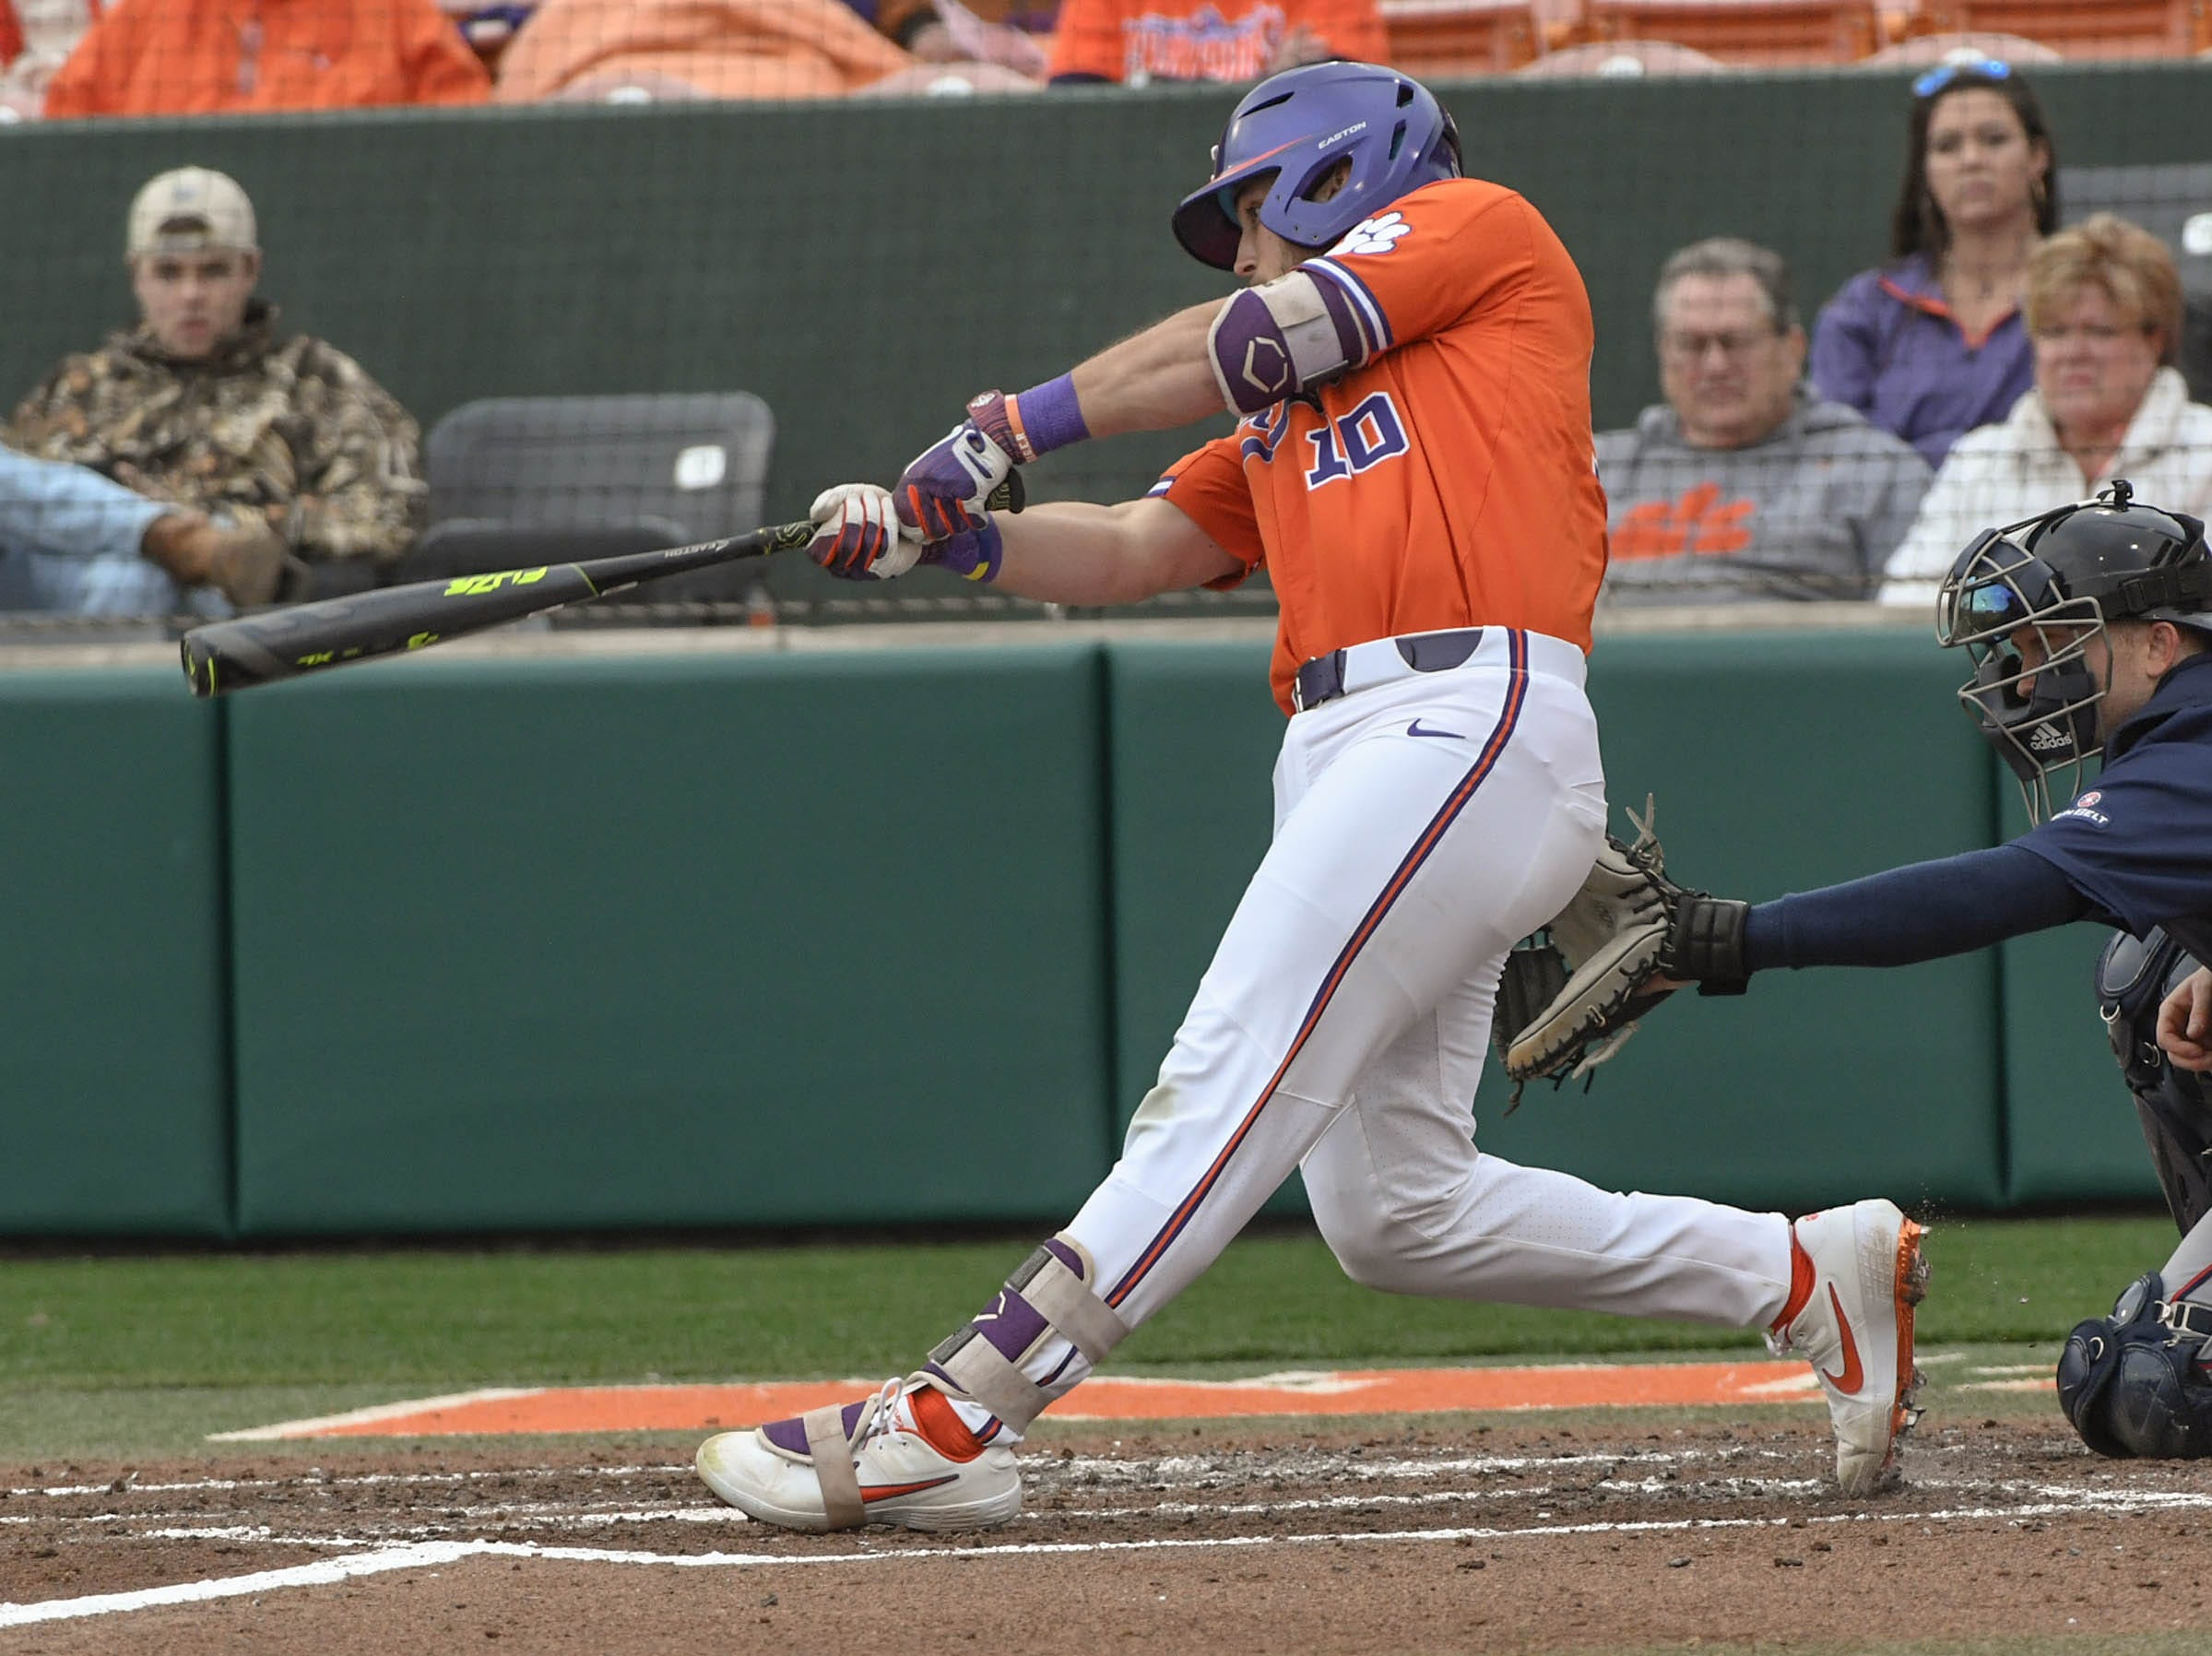 Clemson junior Kyle Wilkie(10) swings against South Alabama during the bottom of the fourth inning at Doug Kingsmore Stadium in Clemson Friday, February 15, 2019.